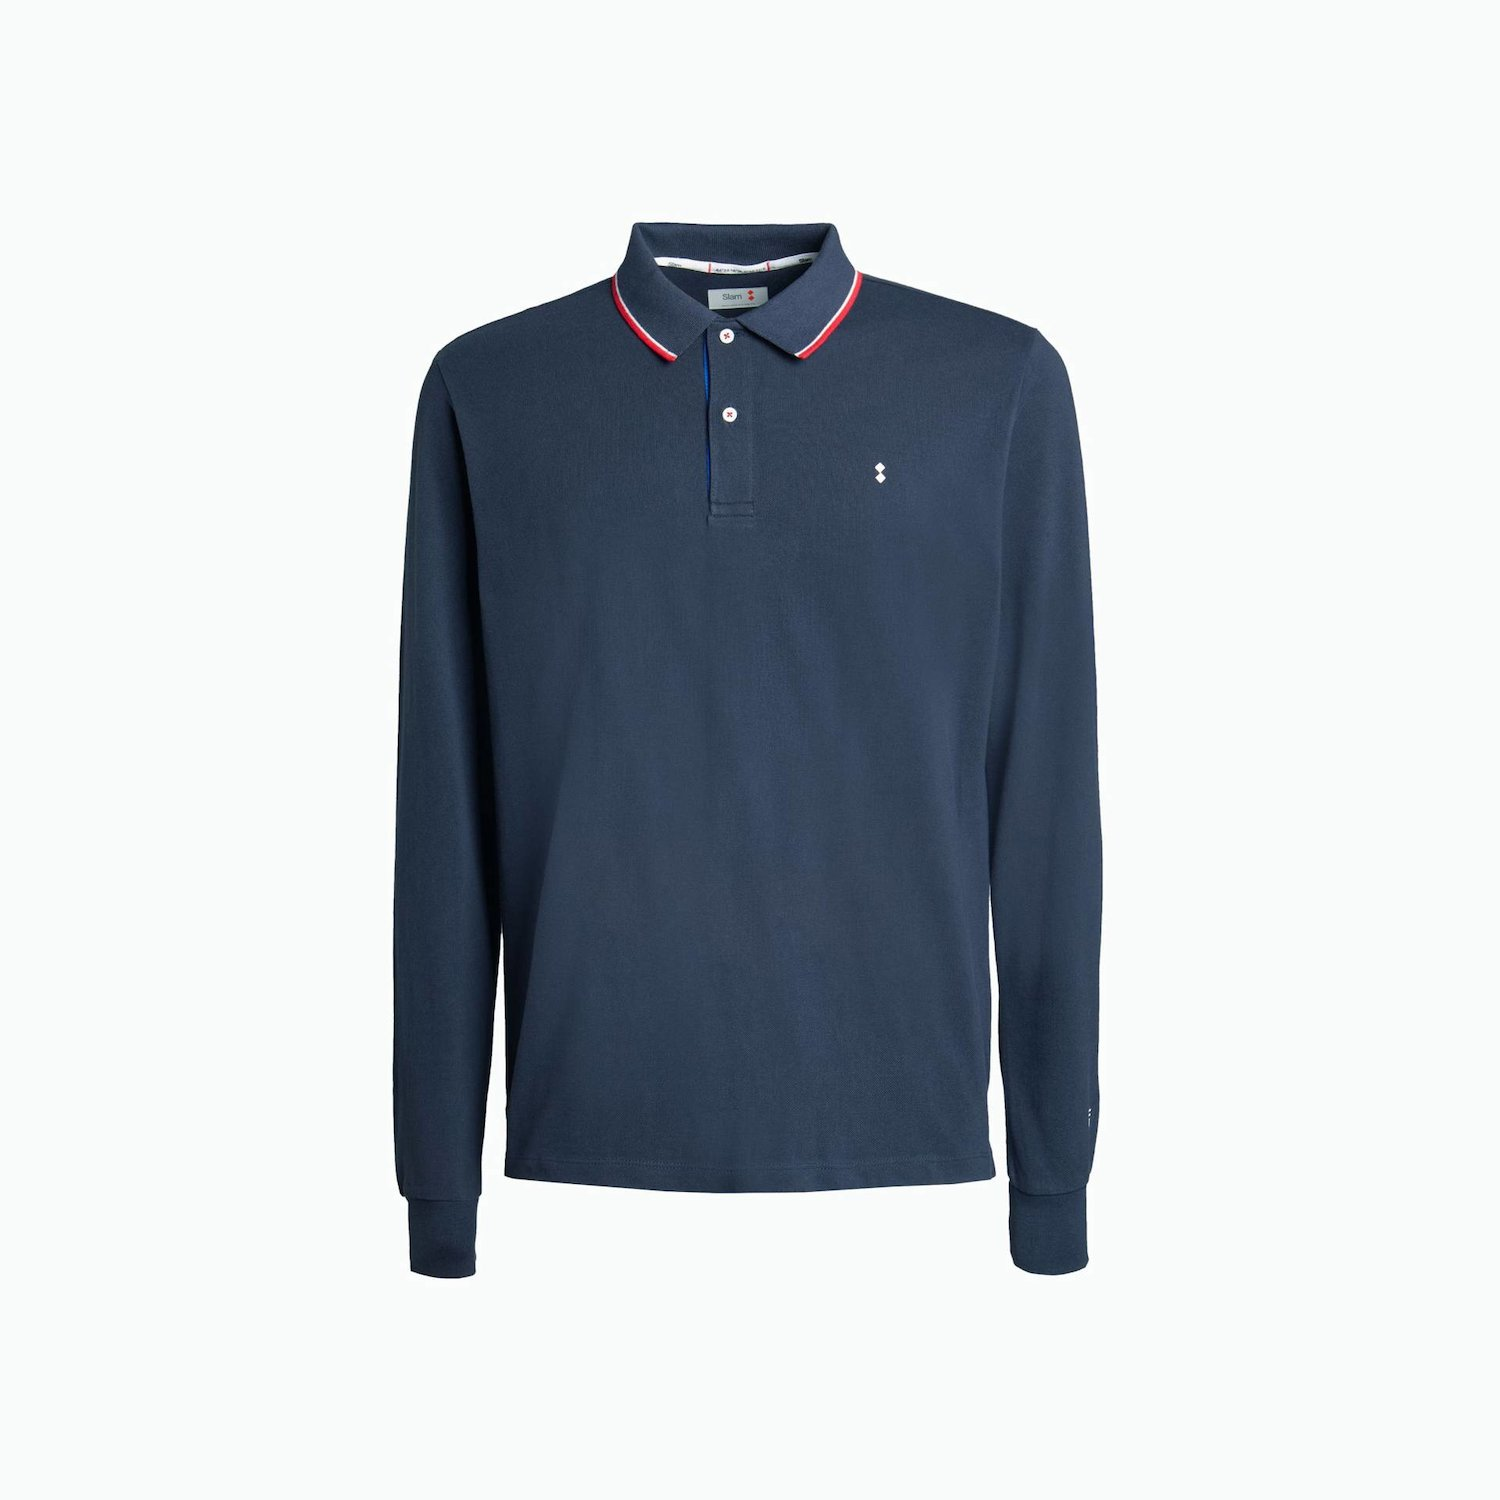 B79 polo shirt - Navy